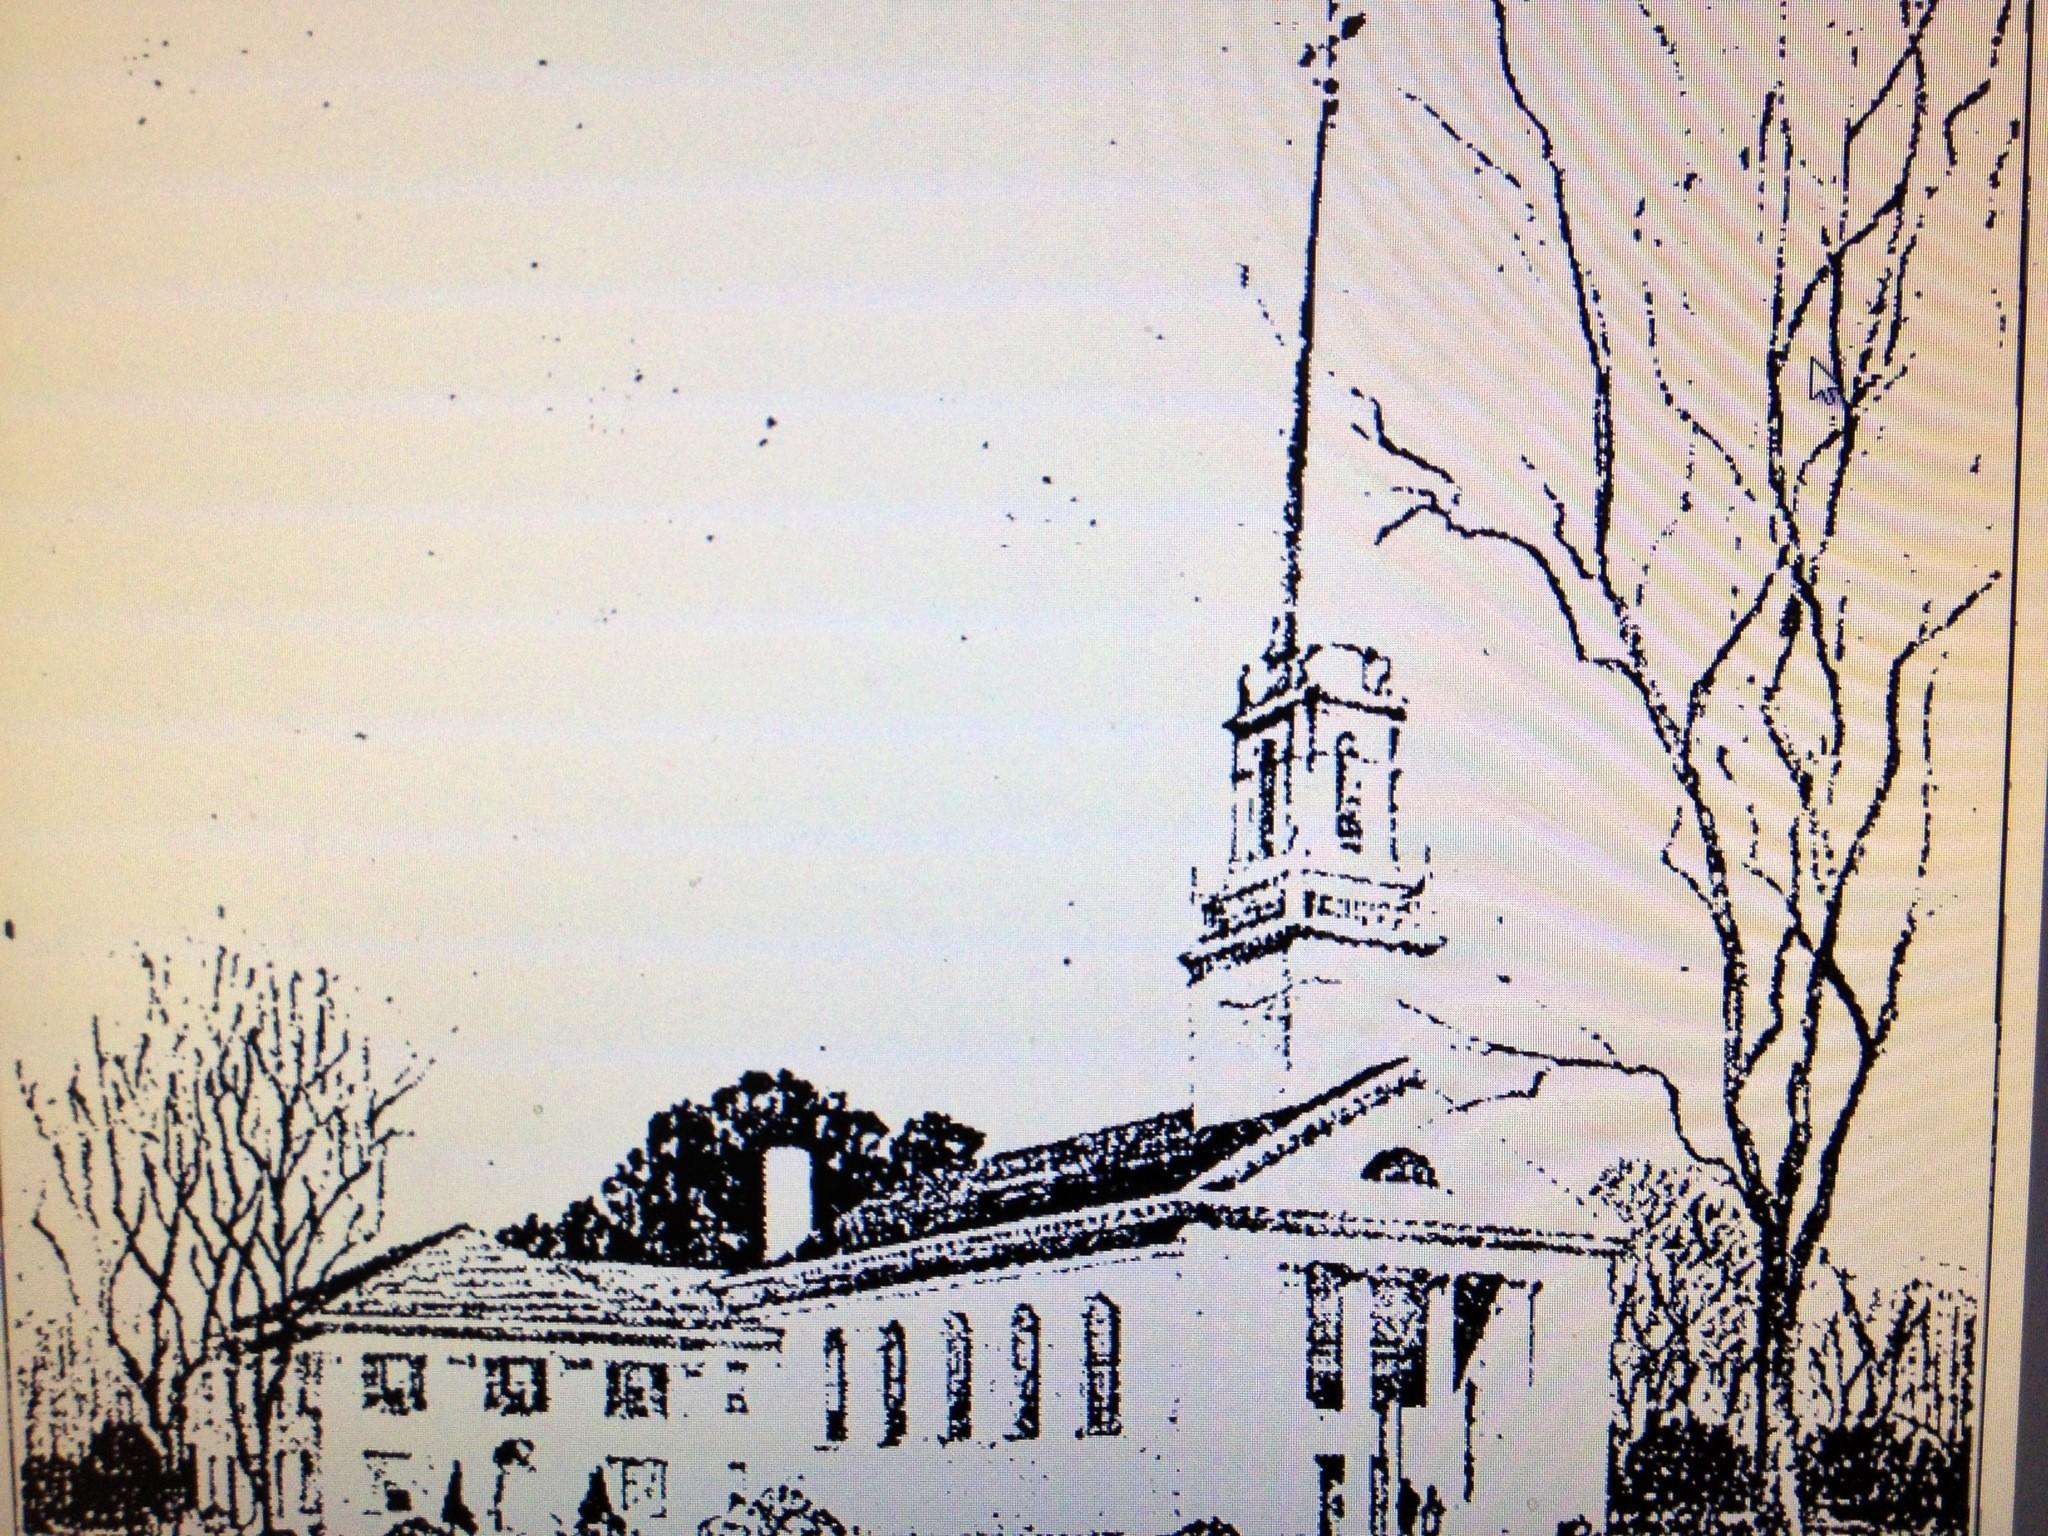 An architectural drawing of what the new church would look like ran in The Hartford Courant on Feb. 27, 1939. The drawing mirrors the look of the present day First Church of Christ, Congregational.